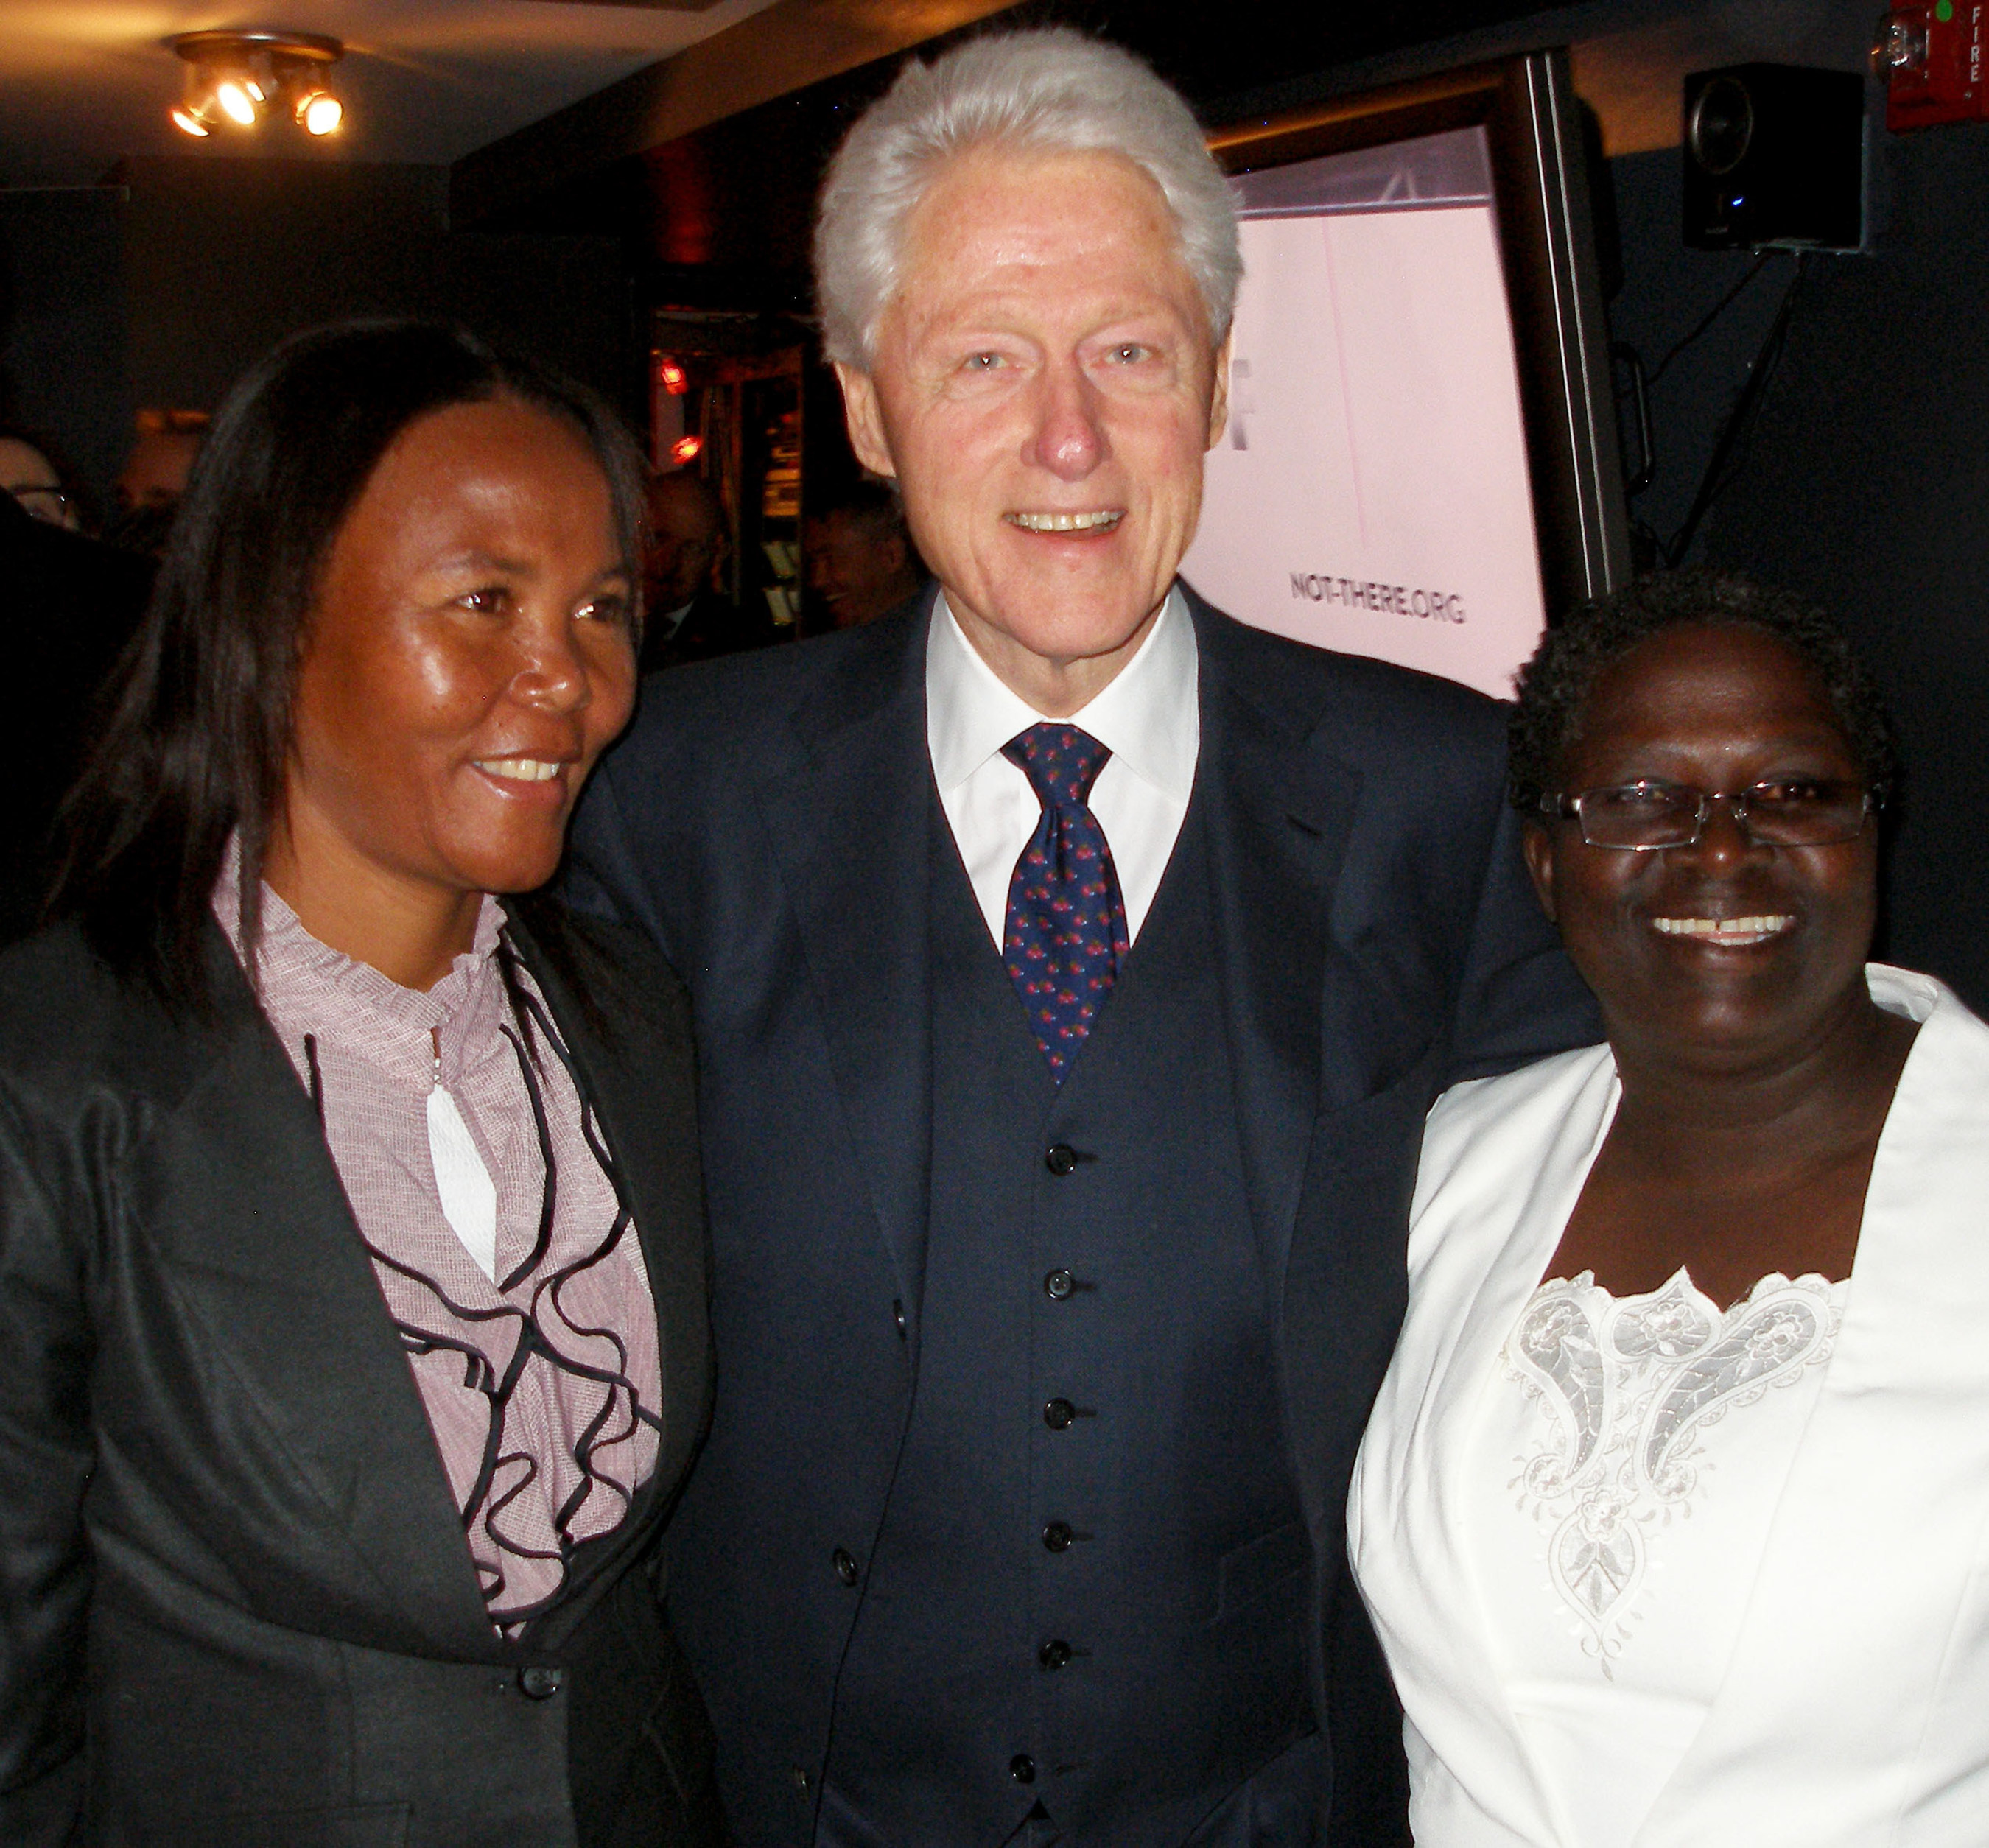 Midwives For Haiti graduates, Genette Thelusmond and Magdala Jean, are thanked for their work to reduce maternal and infant mortality in Haiti by Former President Bill Clinton in New York City on March 9, 2015. Midwives For Haiti is a Richmond, Virginia non-profit organization working in Haiti to educate skilled birth attendants and increase access to skilled maternity care through several high impact health projects.